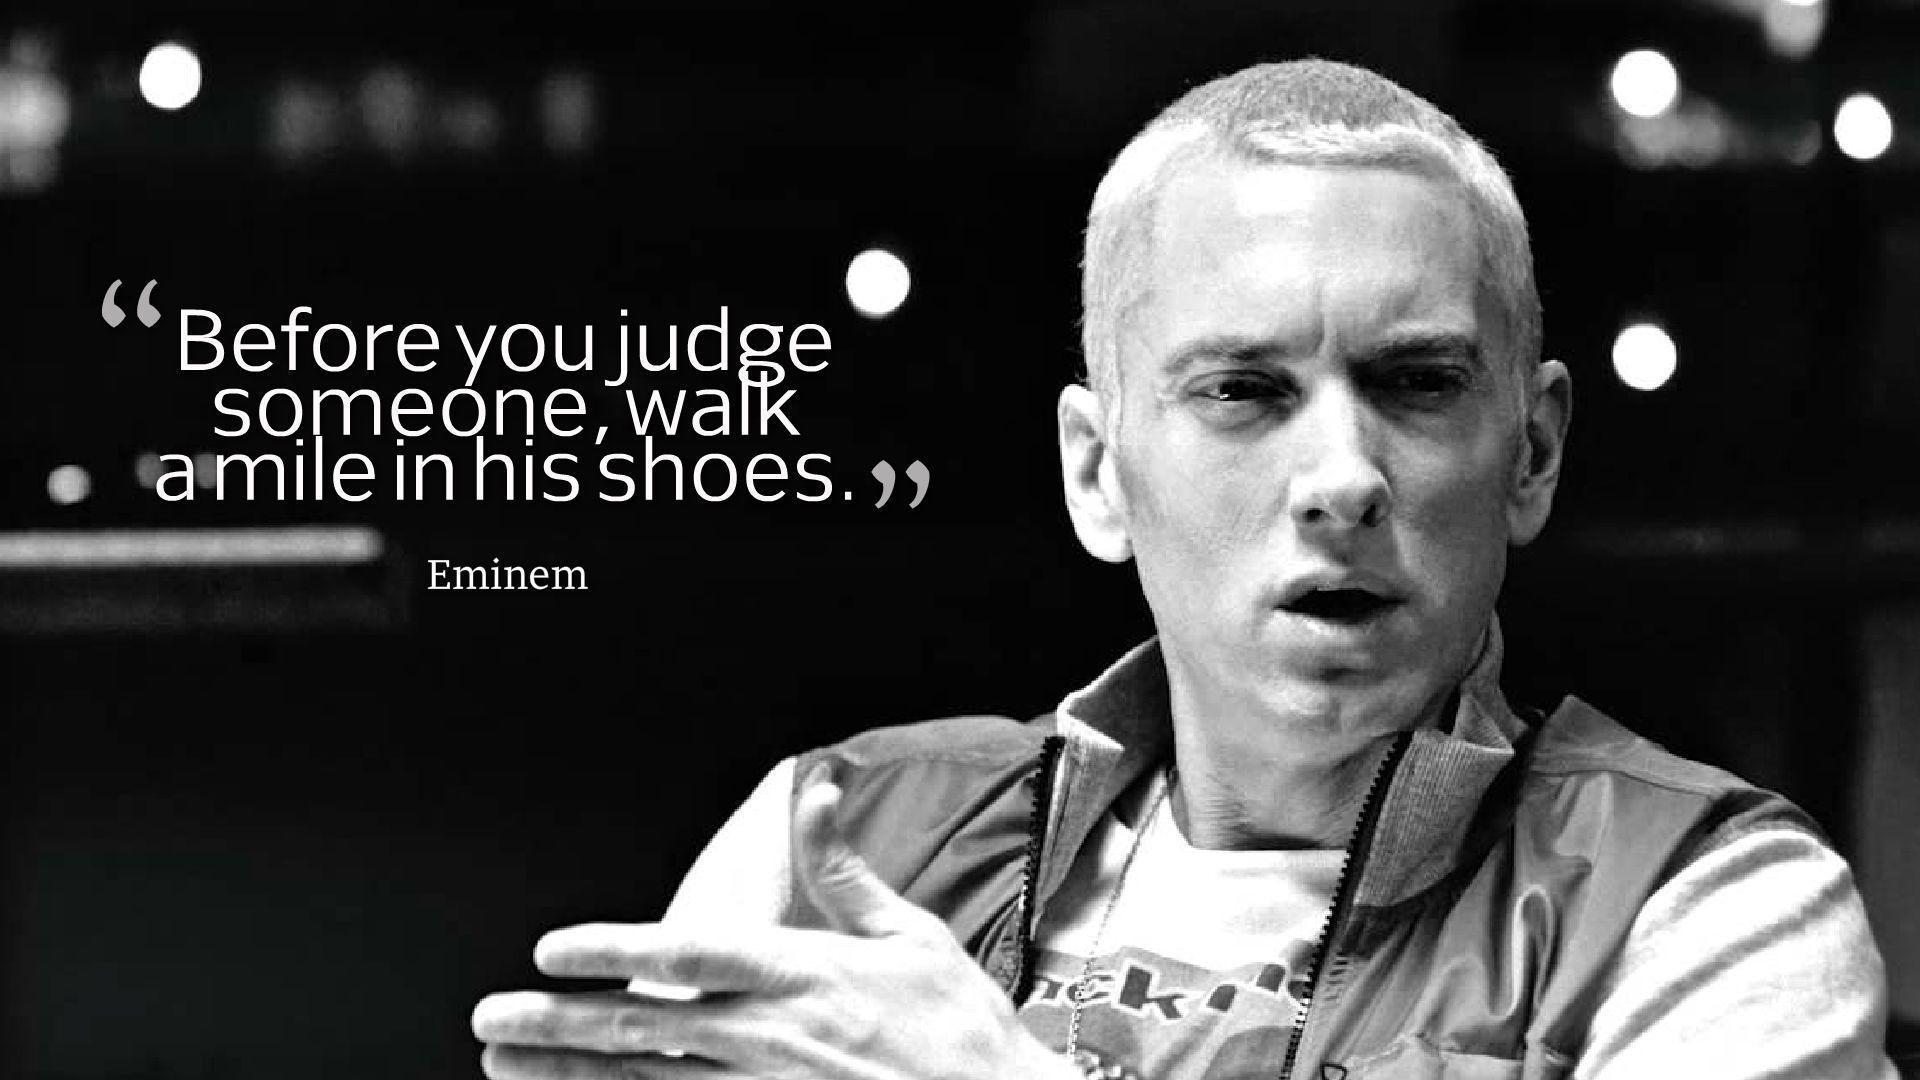 Eminem Quotes Wallpapers HD Backgrounds, Images, Pics, Photos Free .